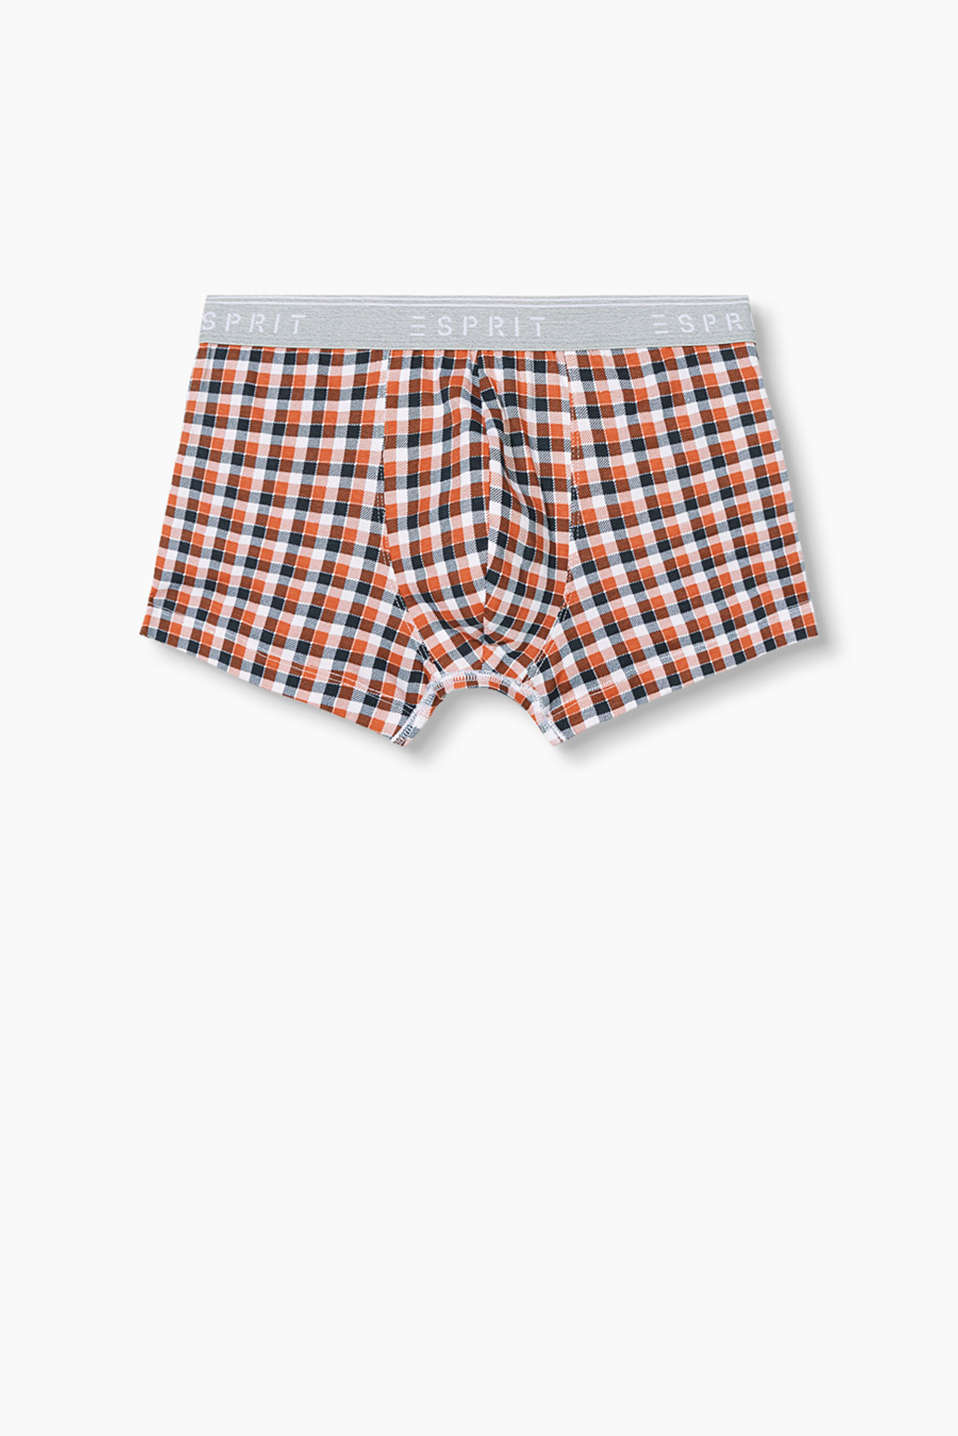 with a fashionable check pattern and attached, elasticated waistband with a logo